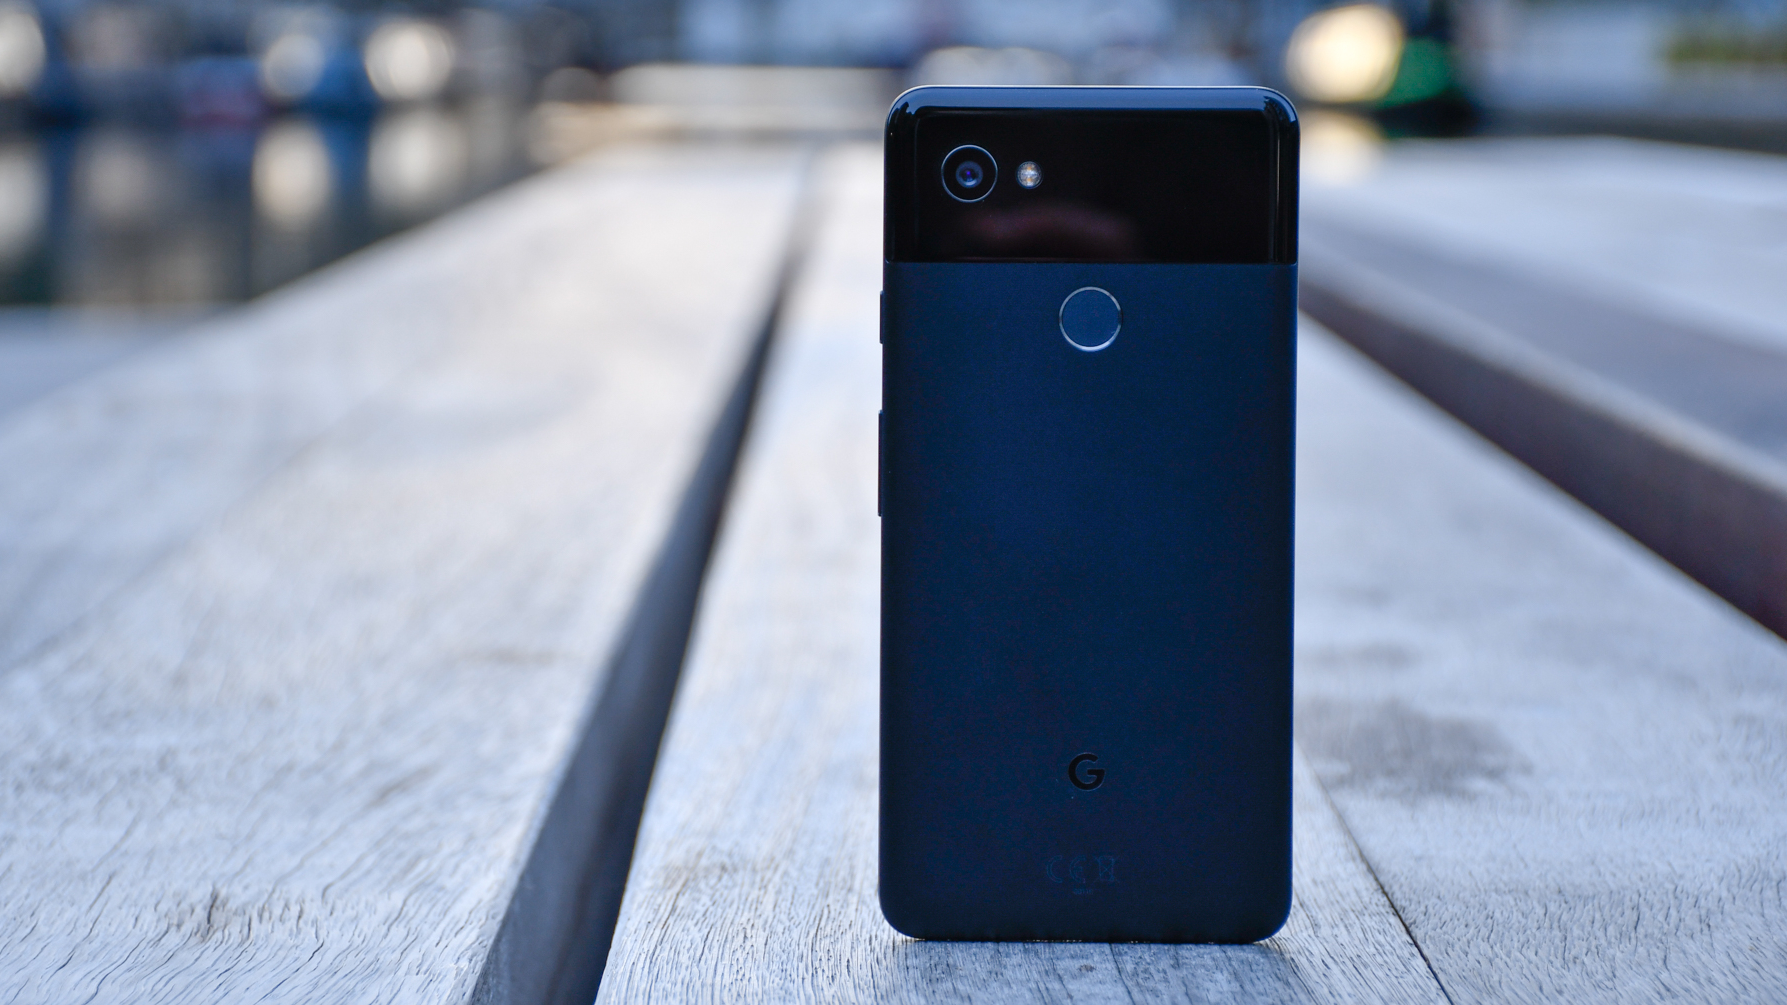 Google sold more Pixel smartphones in 2017 than in 2016 but it's still not enough google-sold-more-pixel-smartphones-in-2017-than-in-2016-but-its-still-not-enough